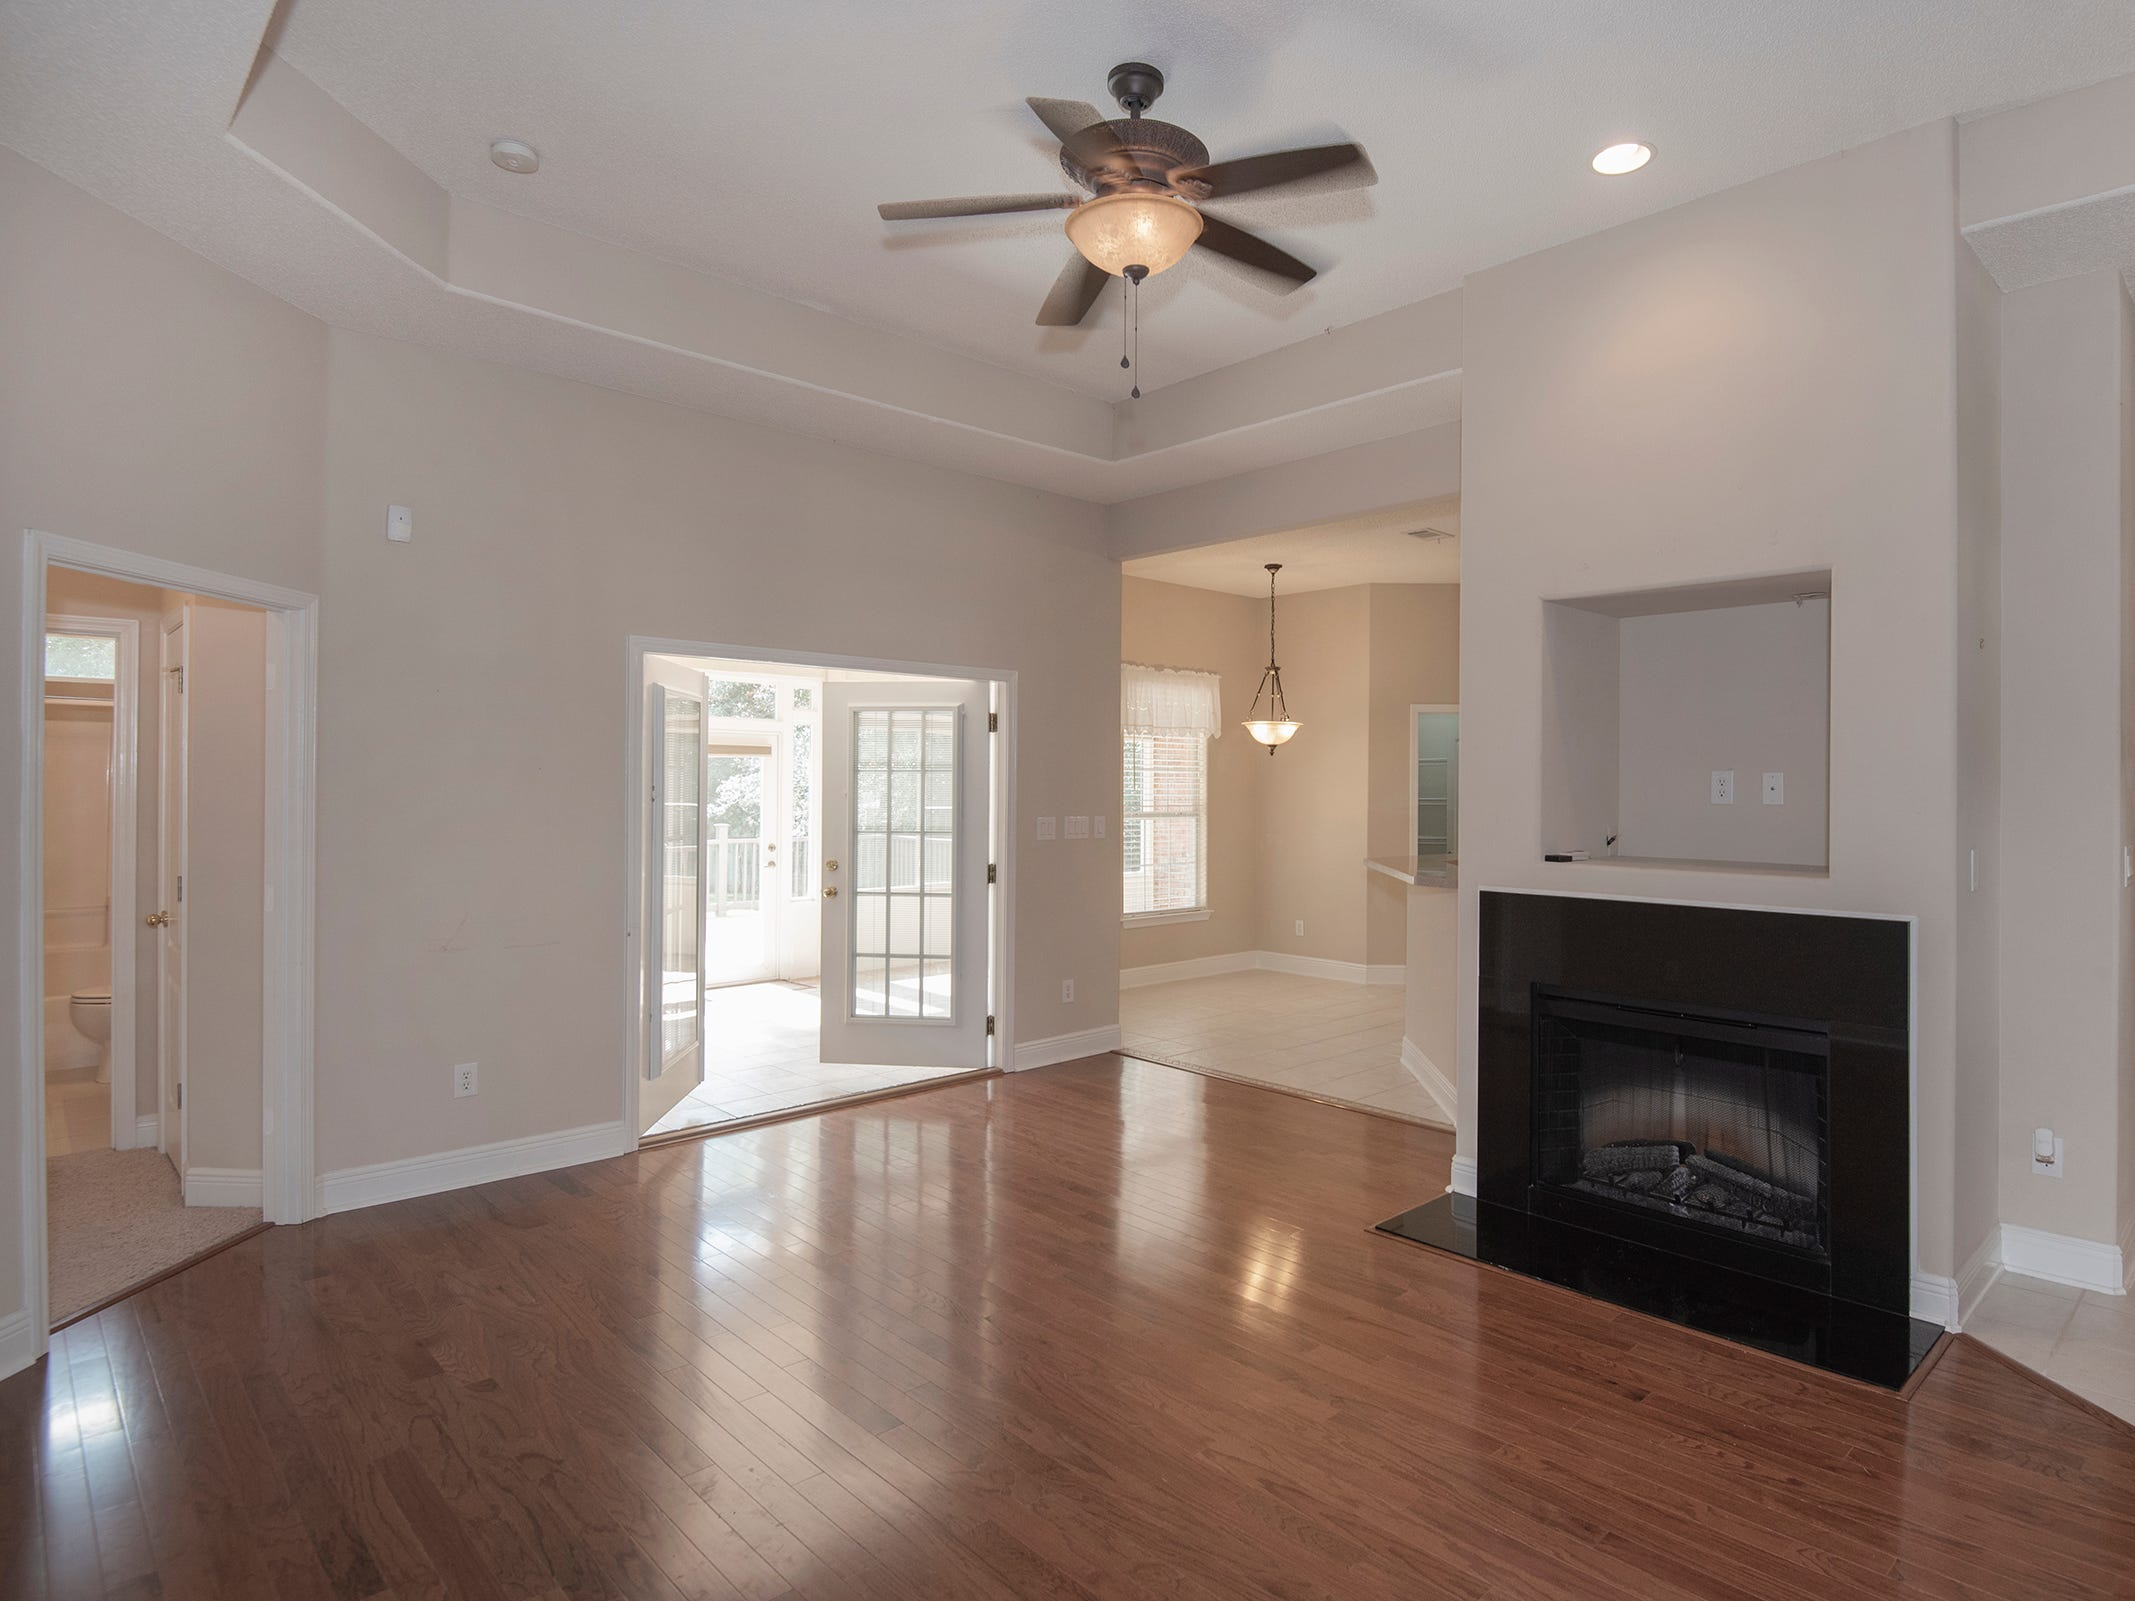 2363 Queens Ferry LaneThe living room space is open to the kitchen and includes a fireplace.